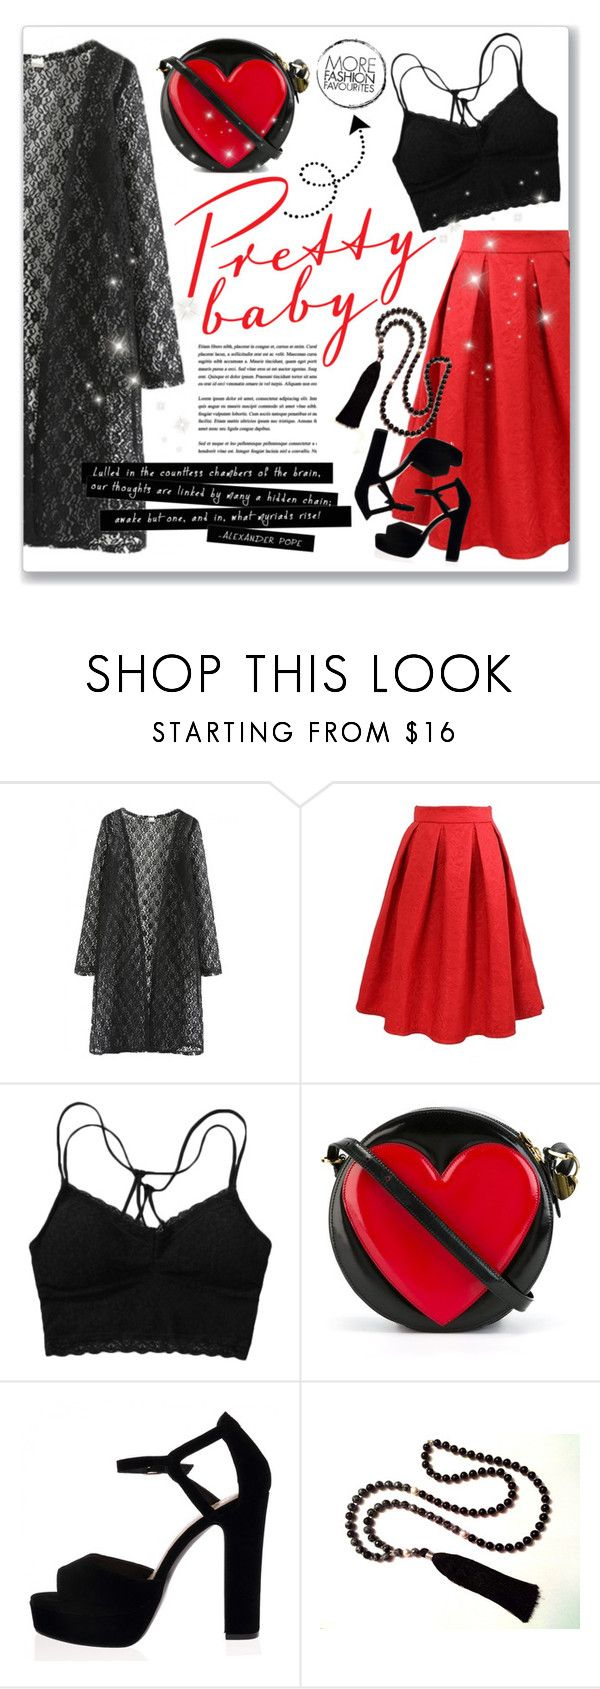 """""""BEAUTIFULHALO // 33"""" by emmas-fashion-diary ❤ liked on Polyvore featuring Moschino, vintage, women's clothing, women's fashion, women, female, woman, misses, juniors and beautifulhalo"""